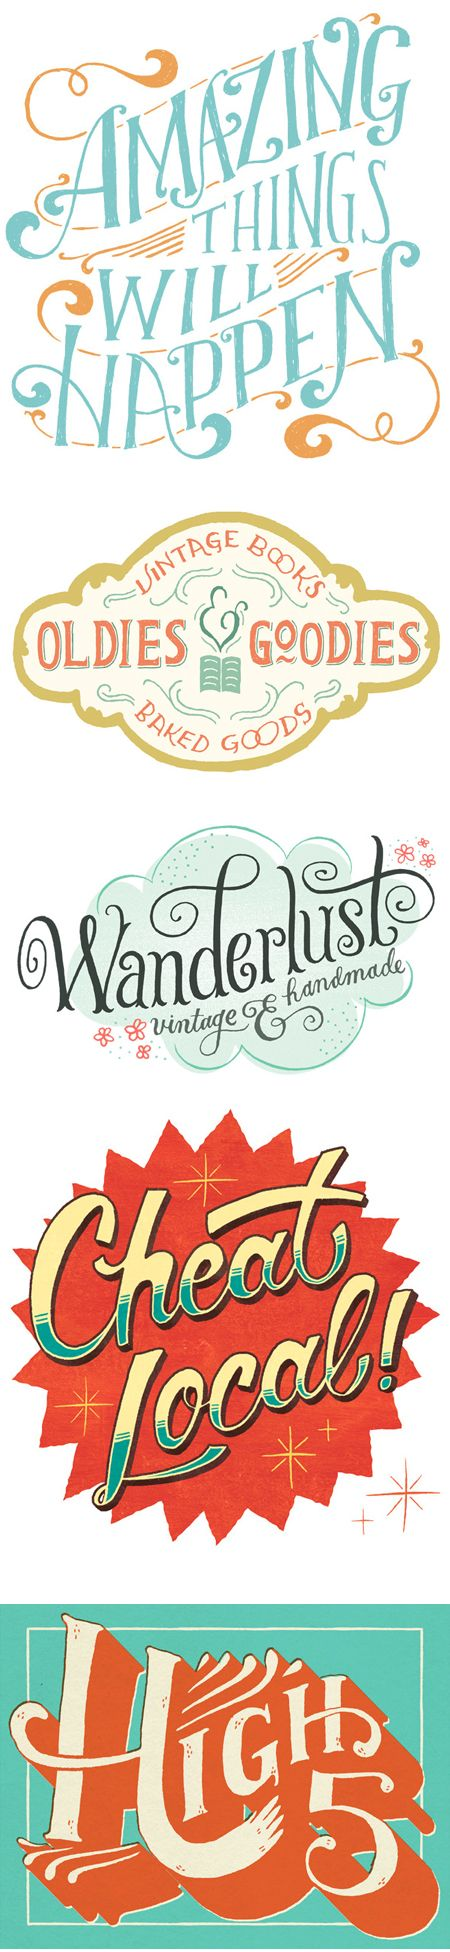 via The Jealous Curator: Mary Kate McDevitt hand-lettering. So lovely!